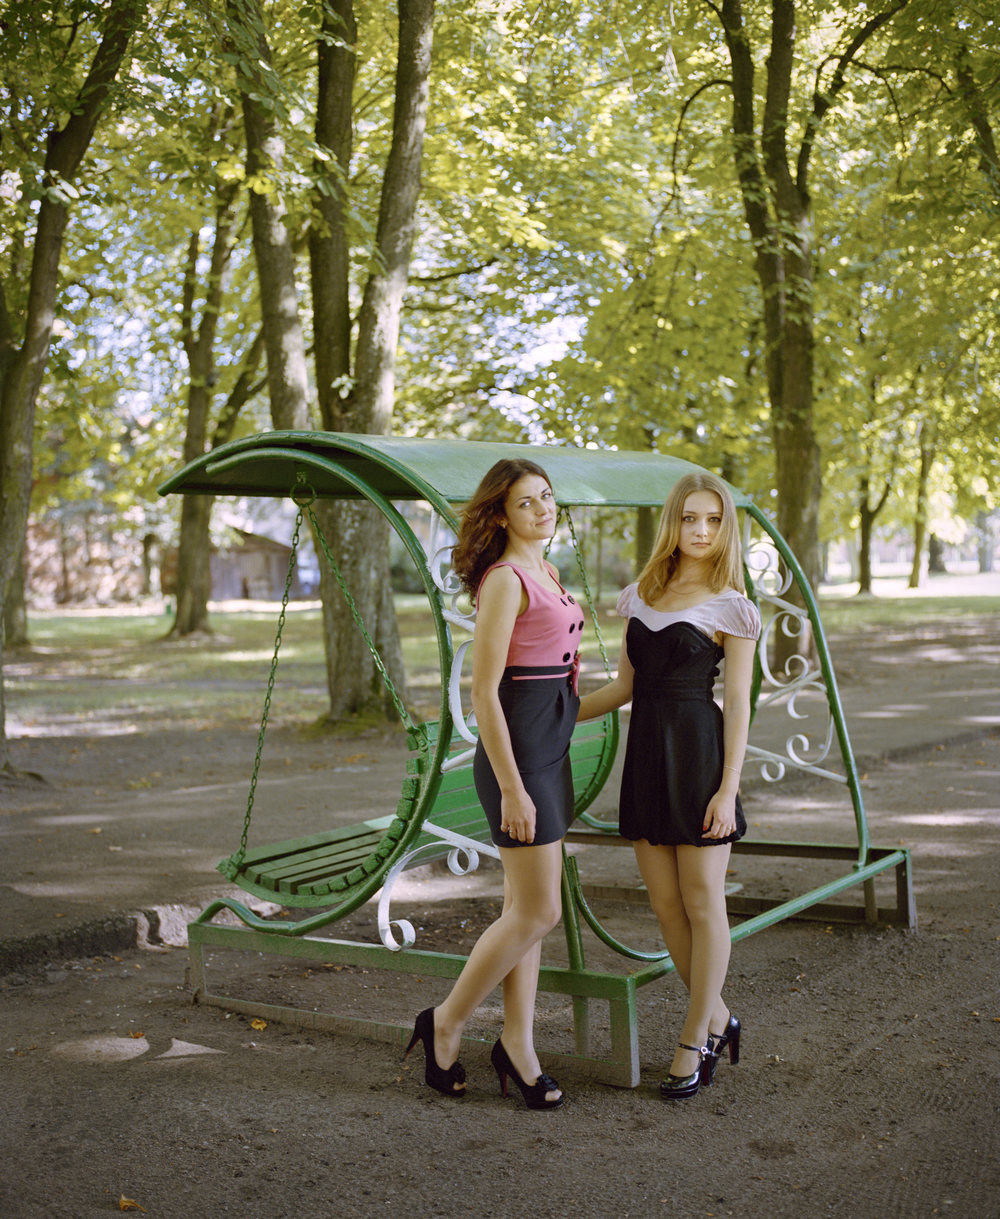 Nadia and Andzelika in city park of Pravdinsk, Kaliningrad